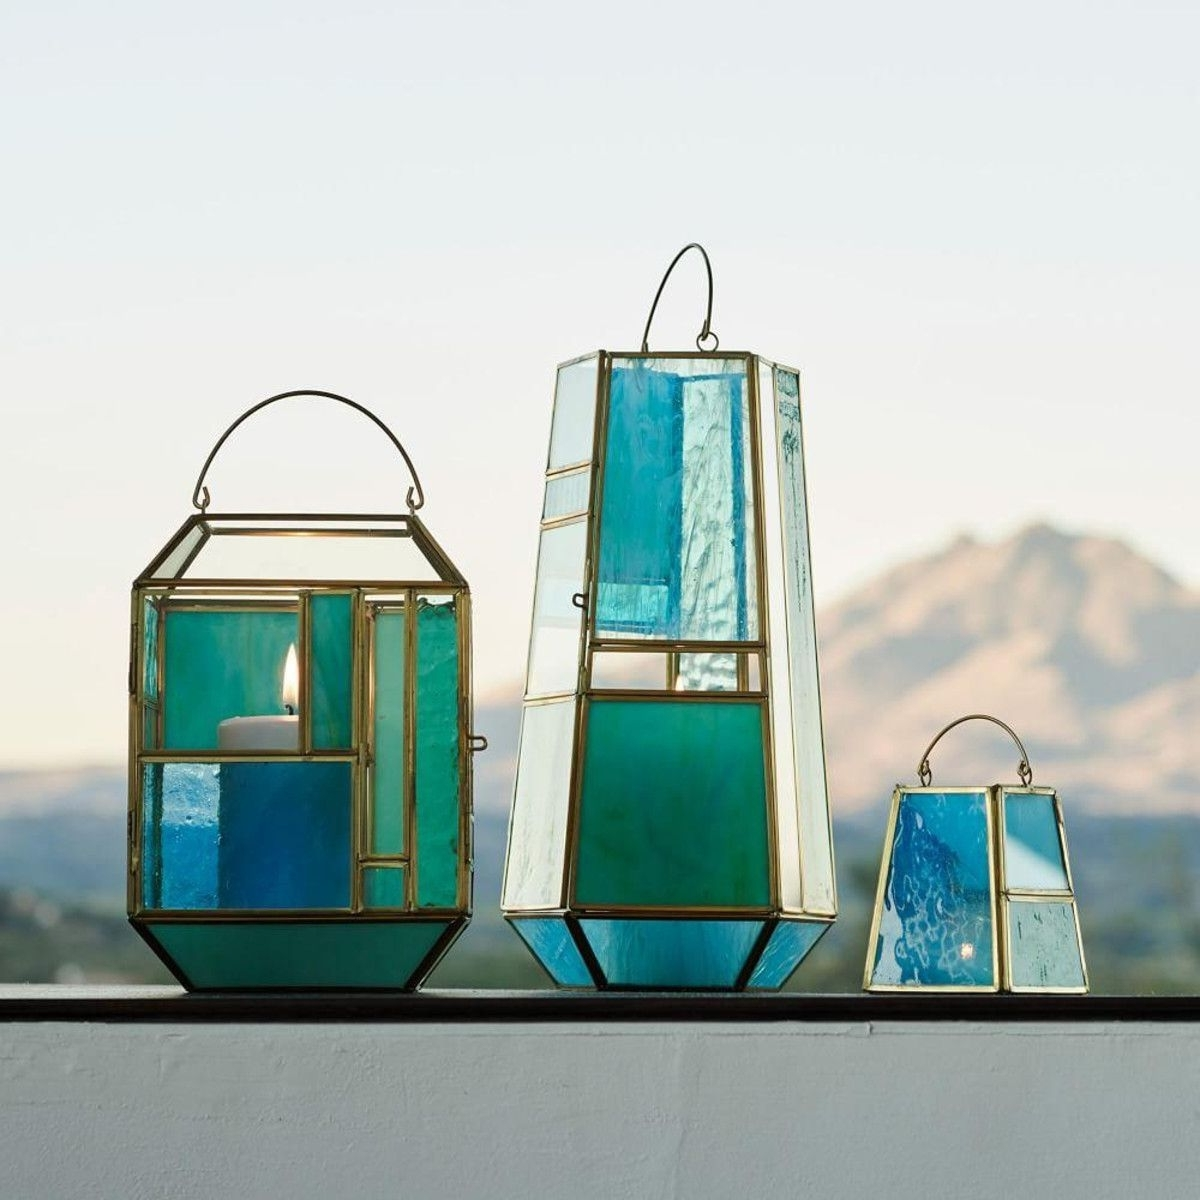 Popular Hang These Stained Glass Inspired Lanterns Inside Or Outside, To In Blue Outdoor Lanterns (View 9 of 20)